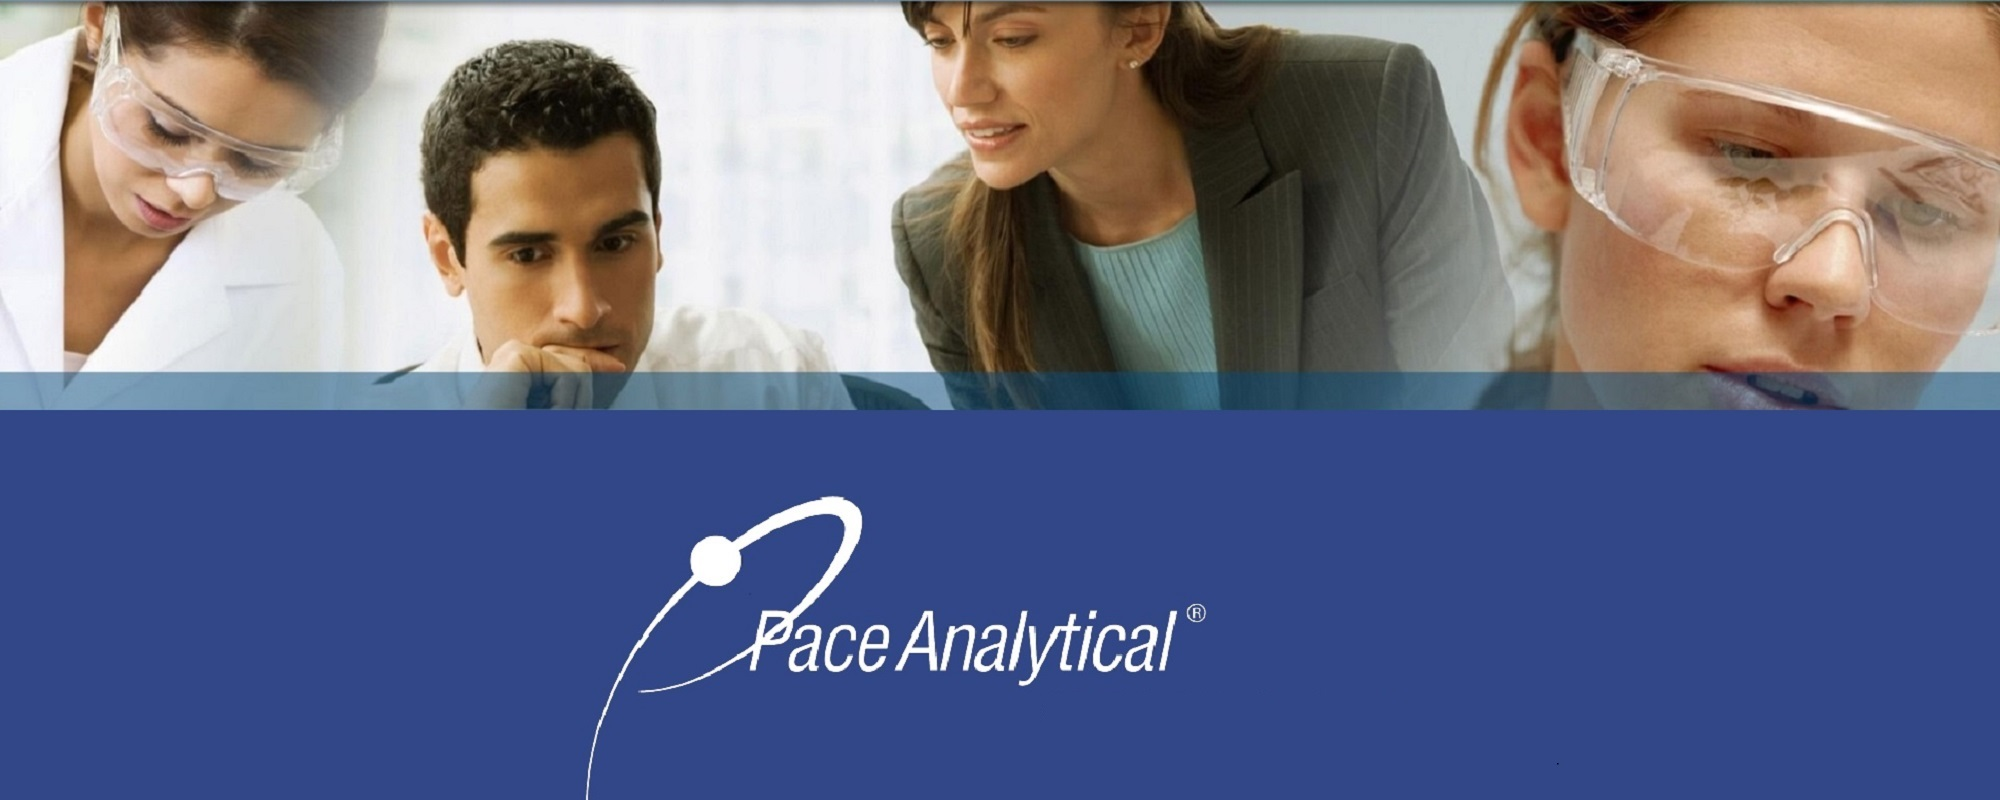 Pace Analytical Scientific Professional Services